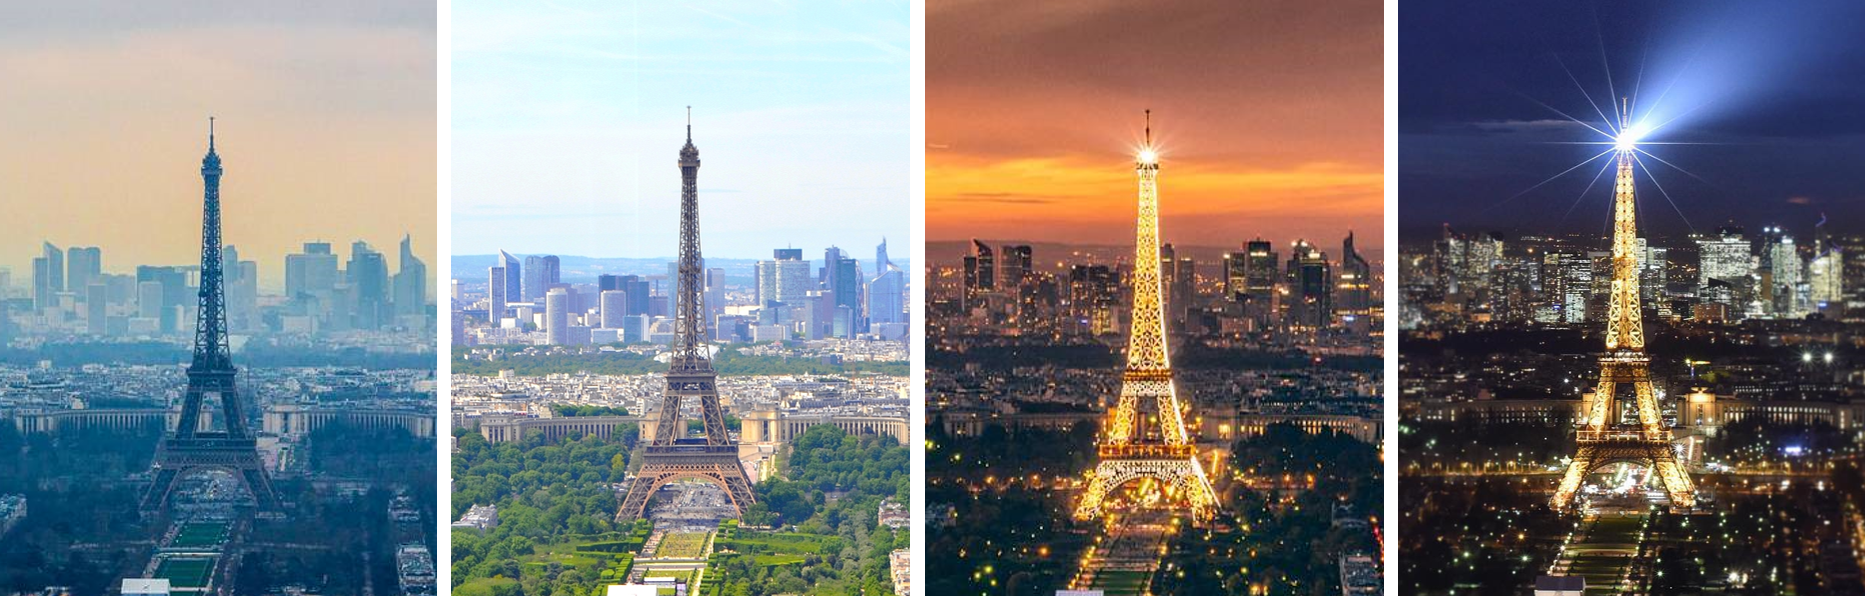 Eiffel_Tower_day_and_night